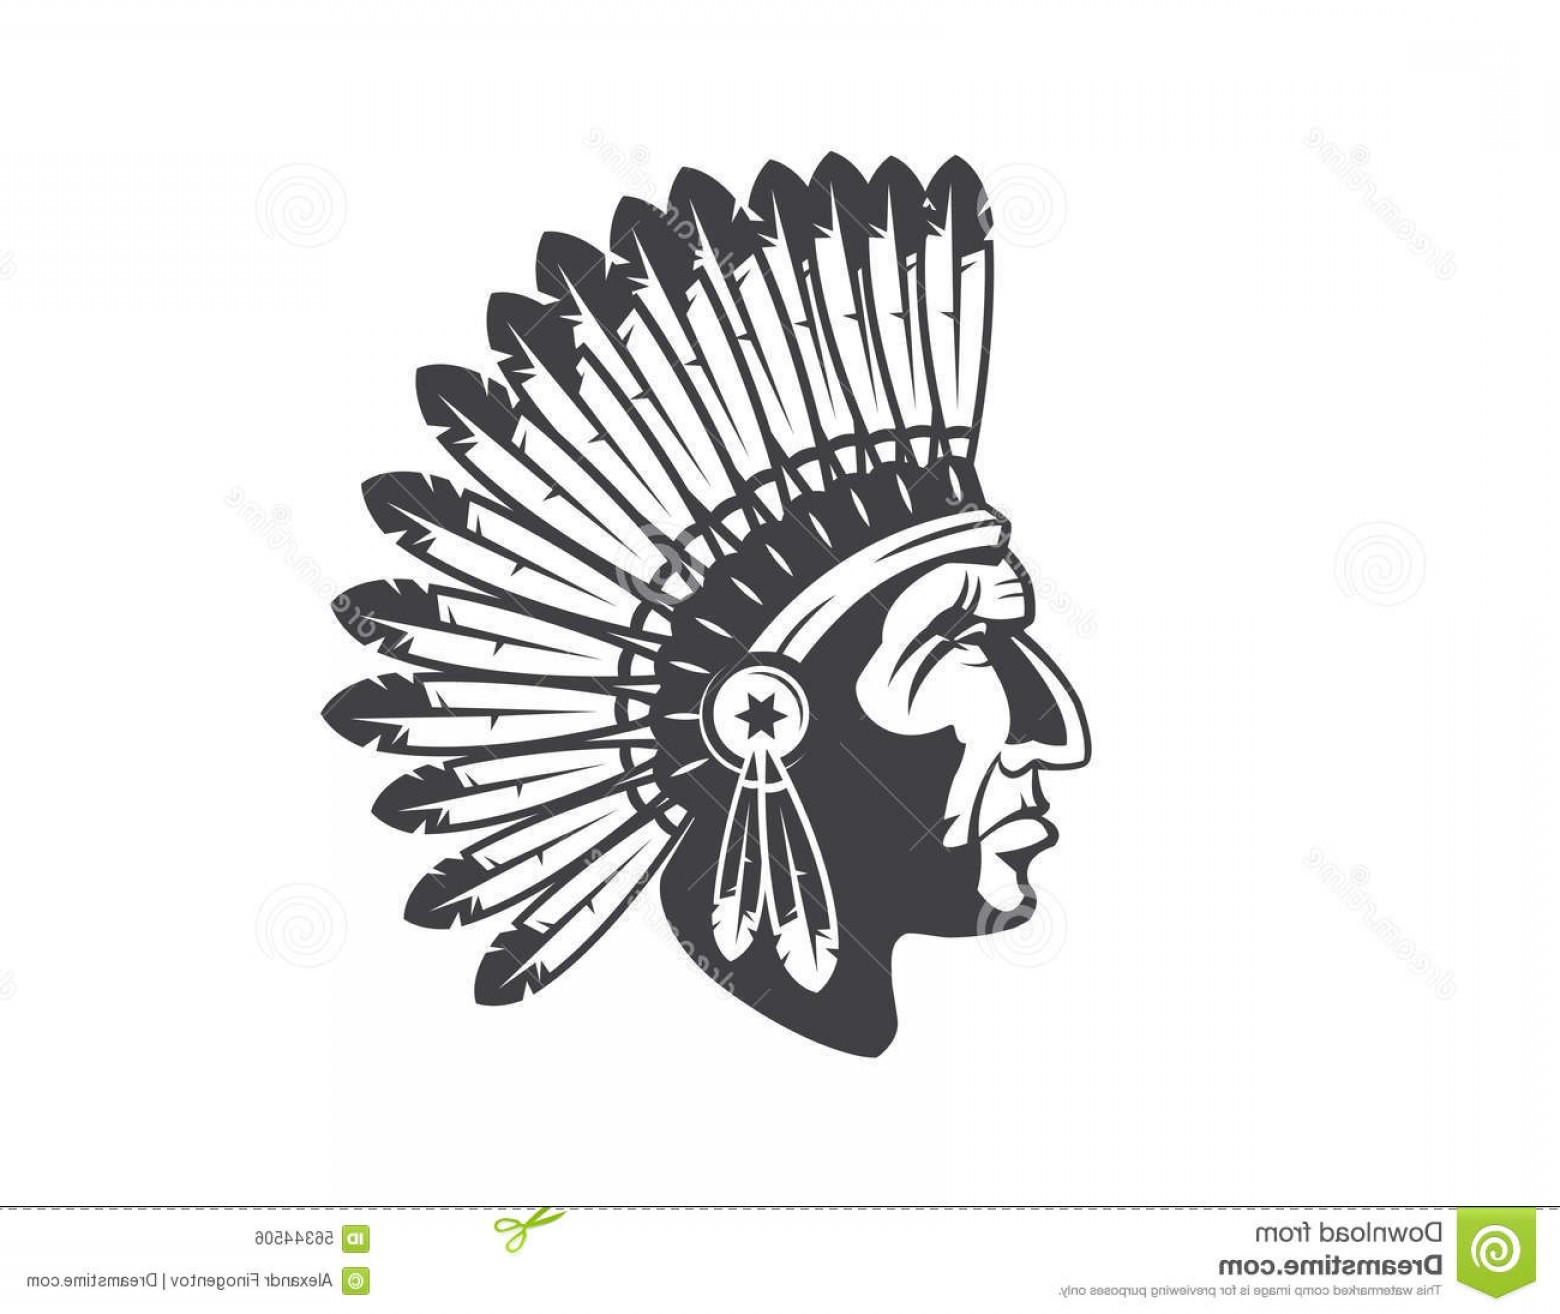 American Indian Chief Vector: Stock Illustration Native American Indian Chief Headdress Mascot Tribal Image